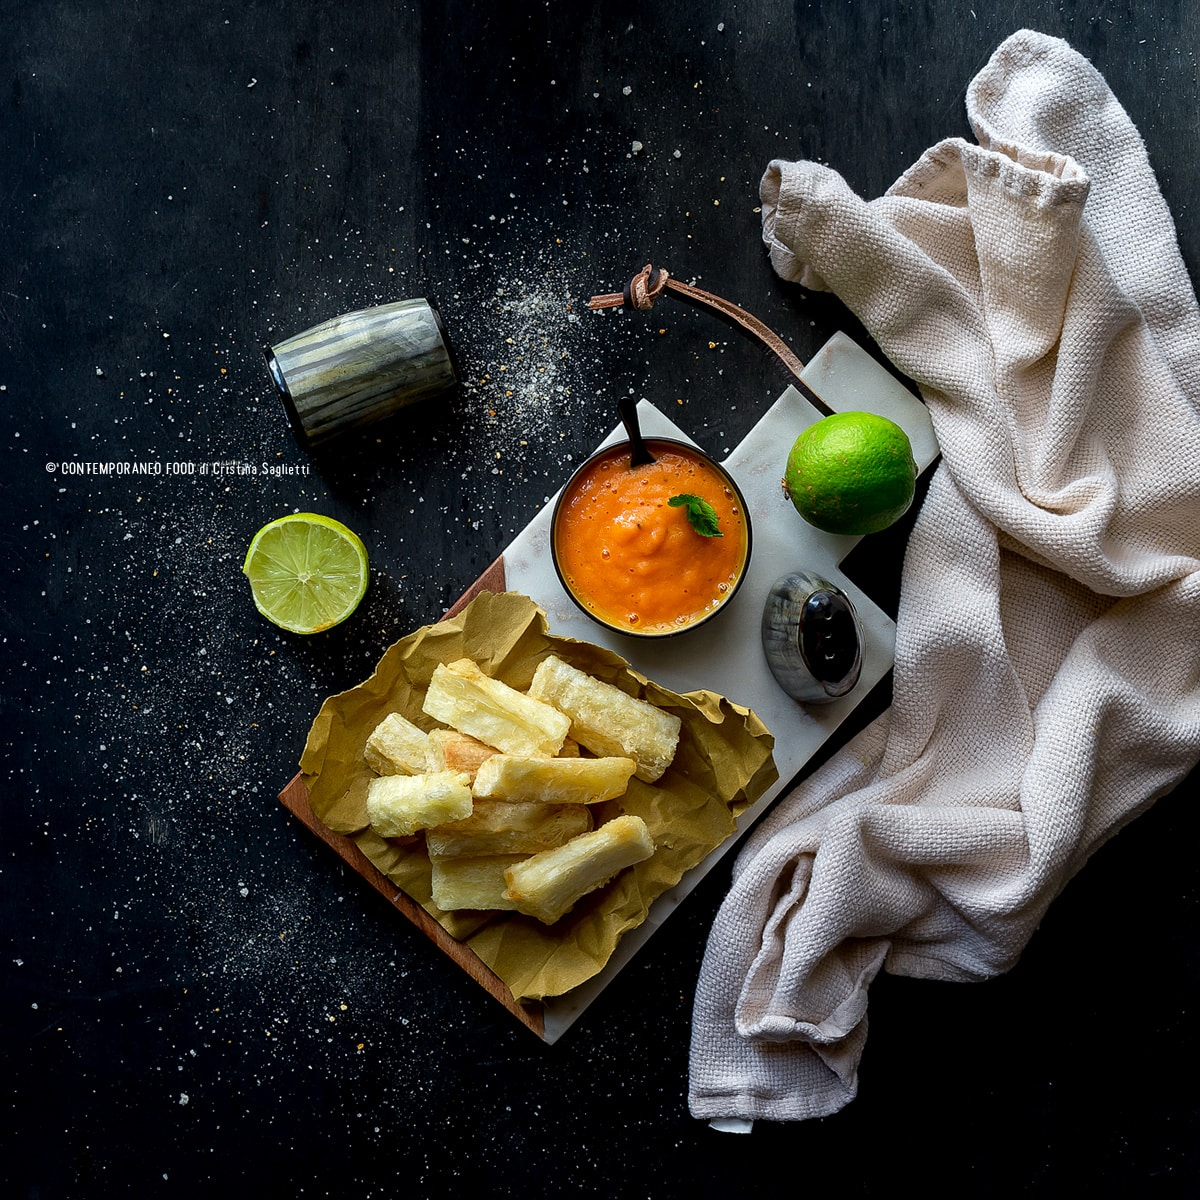 brunch-tapioca-fritta-con-coulis-di-papaya-lime-ricetta-superfood-2018-3-contemporaneo-food